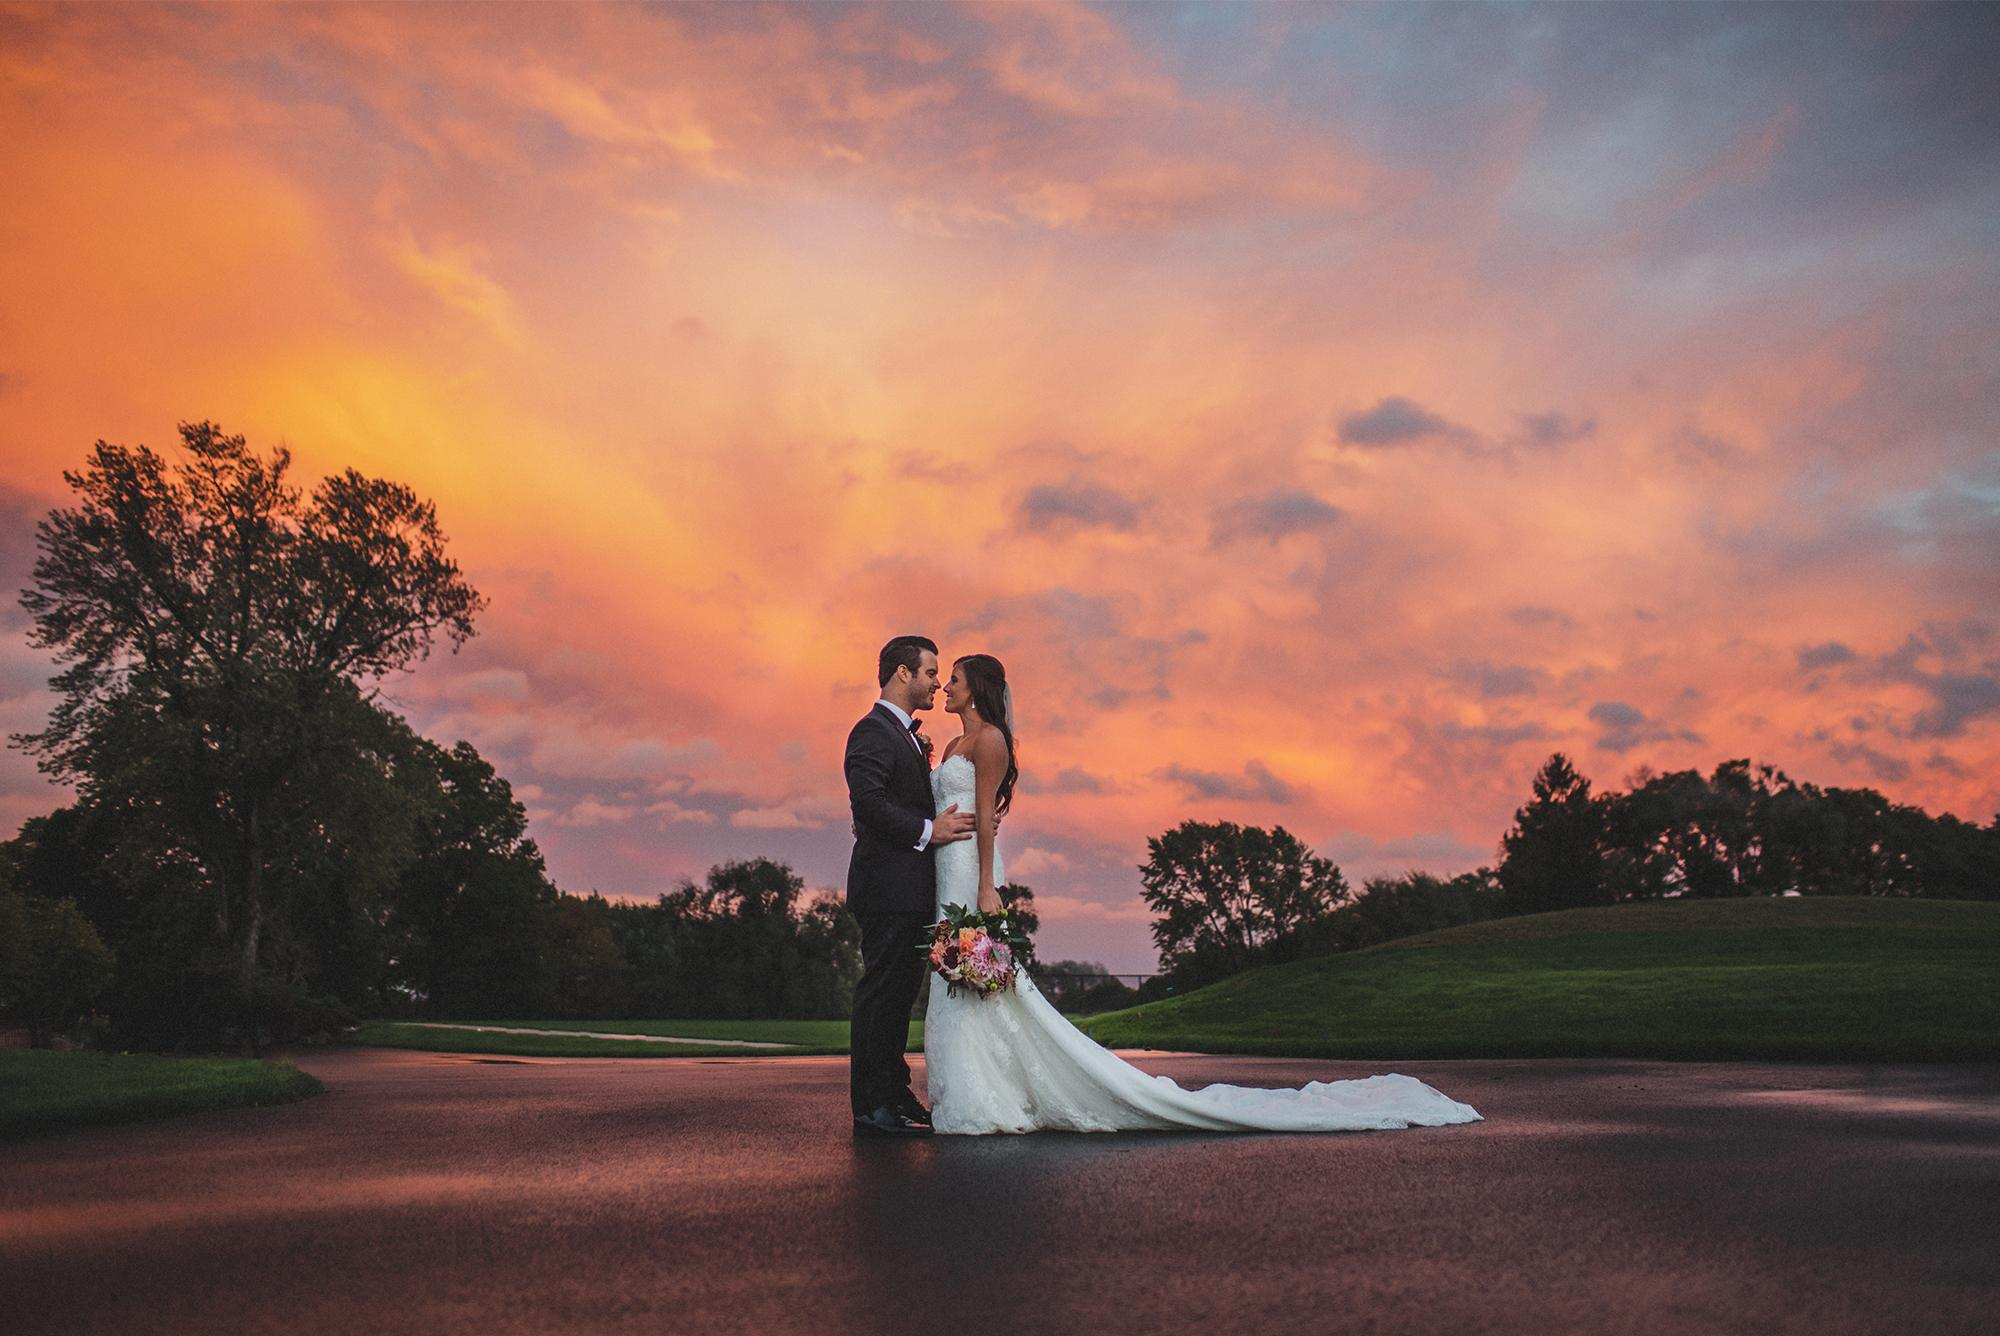 Real Wedding Homepage - Nikki Rick - Angela Renee Photography